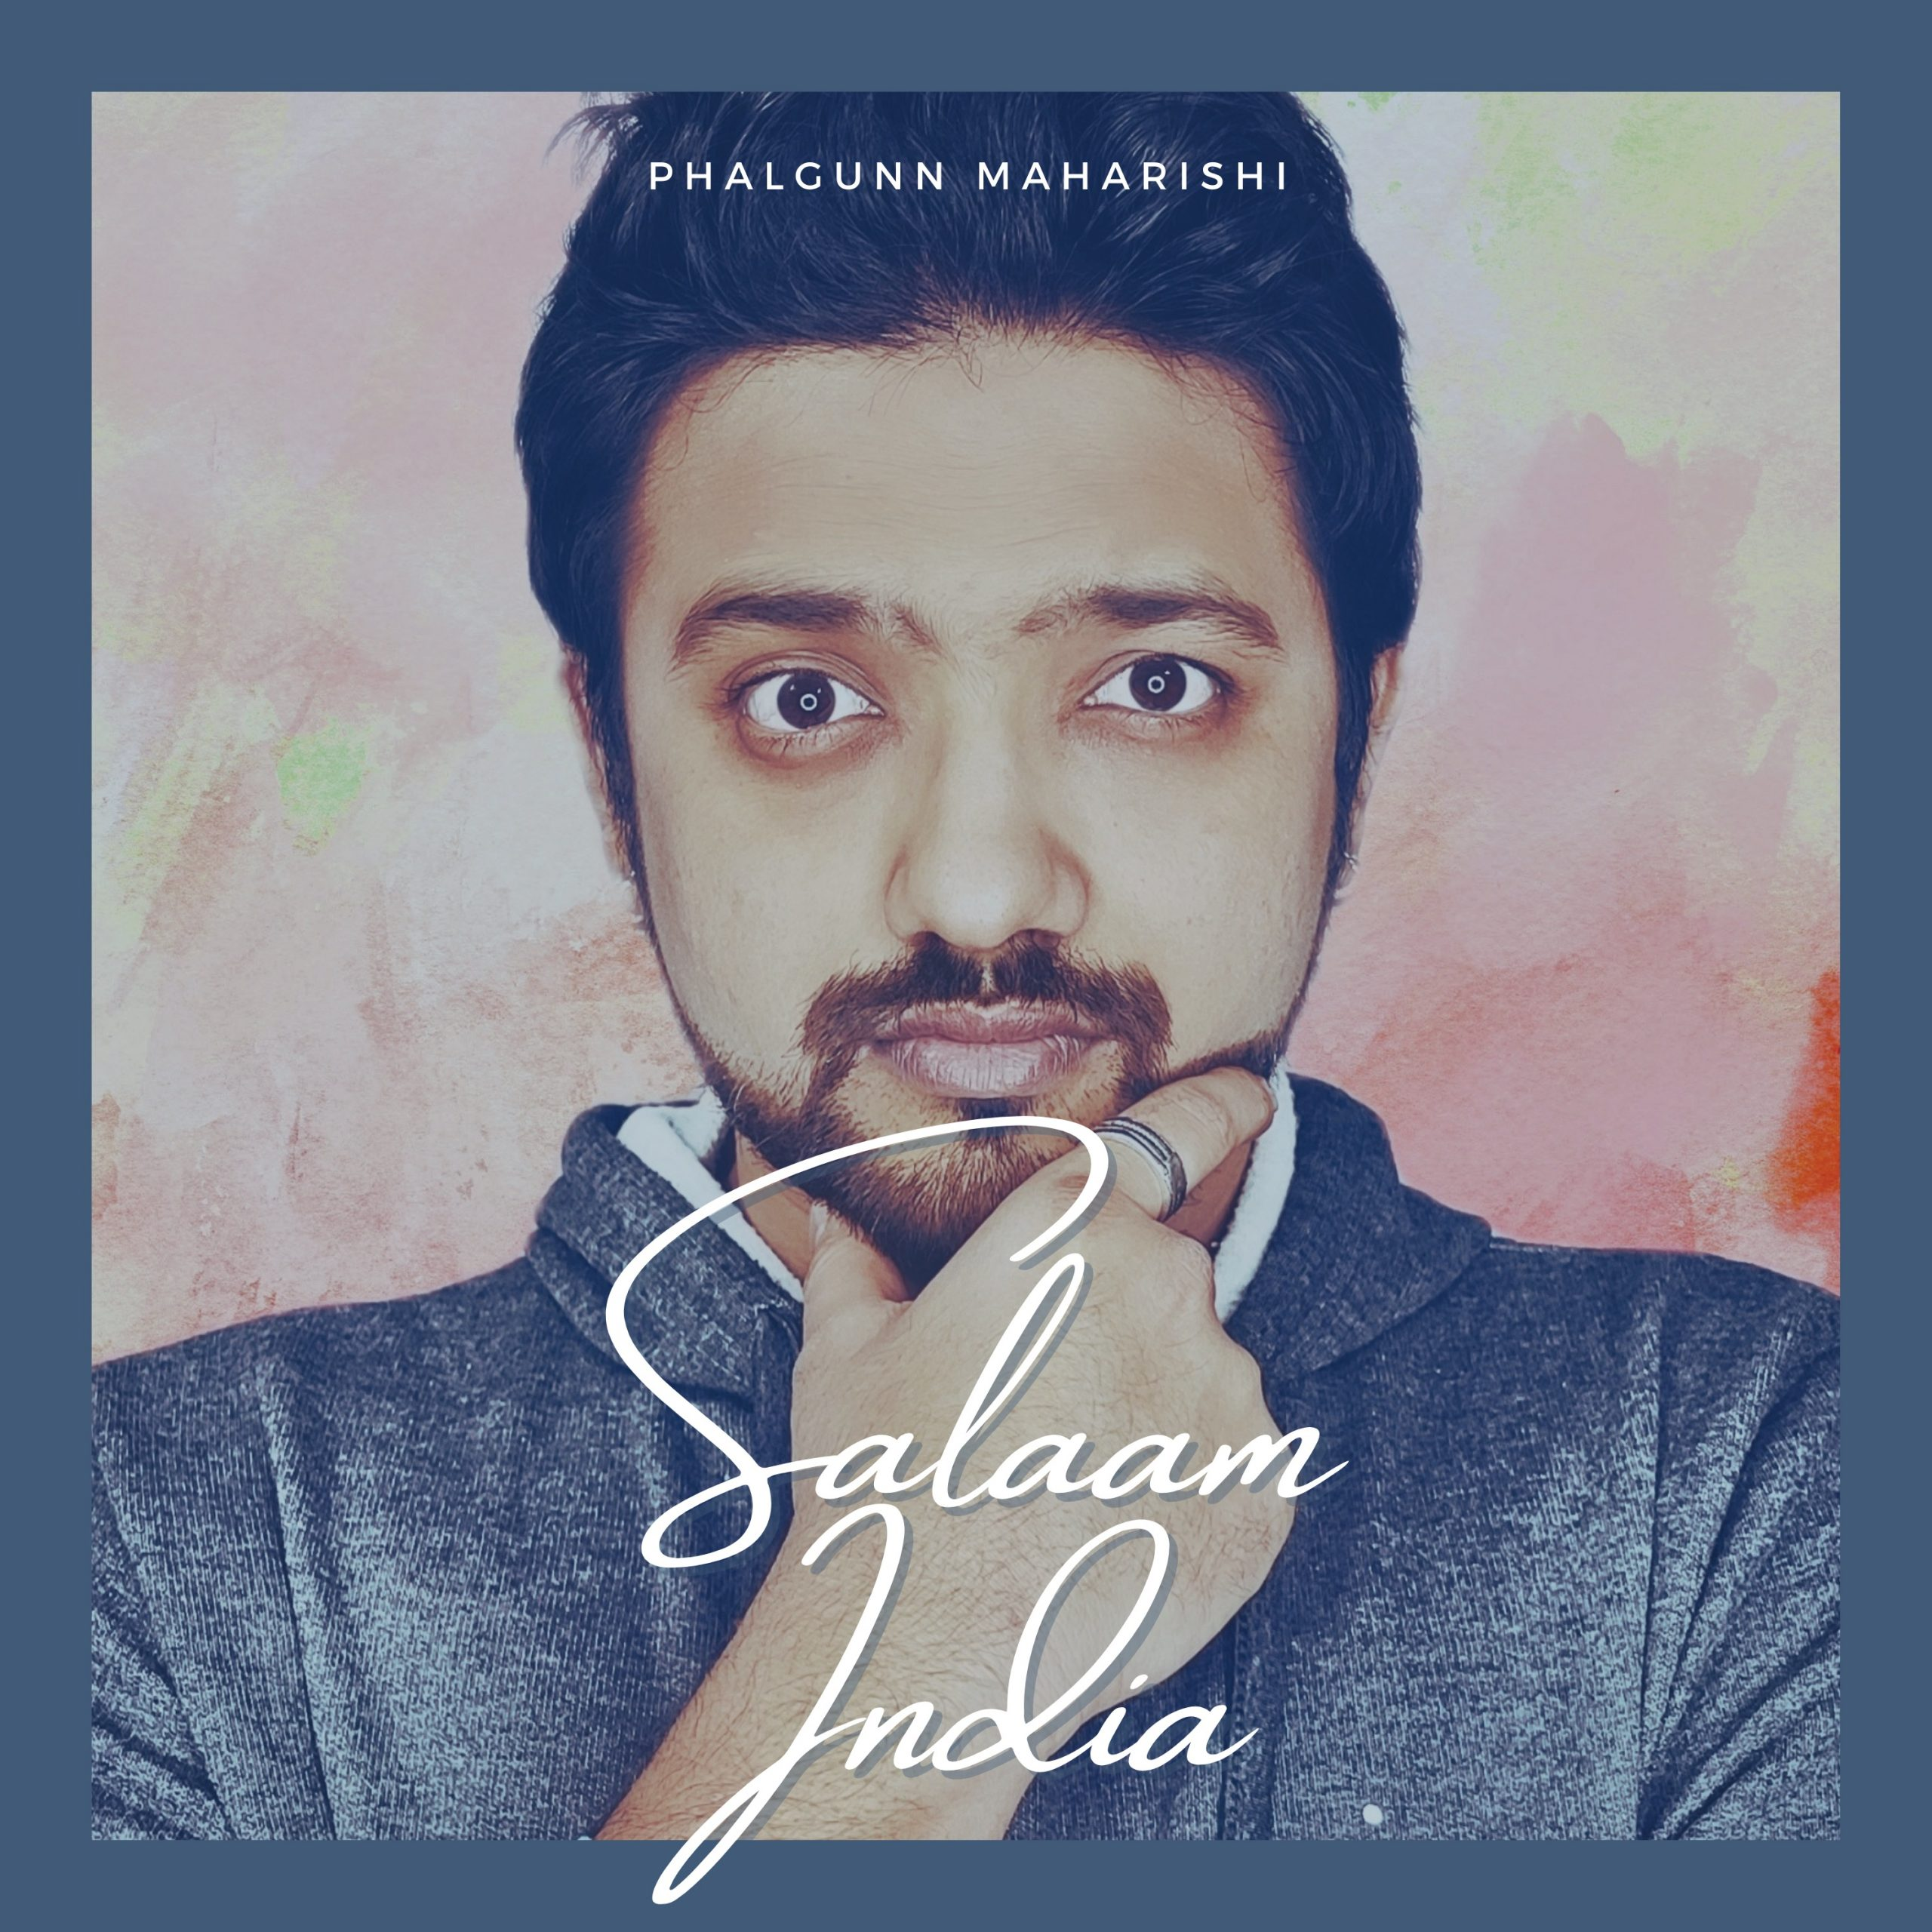 """Read more about the article Celebrating India's Independence Day with Phalgunn Maharishi's """"Salaam India"""""""